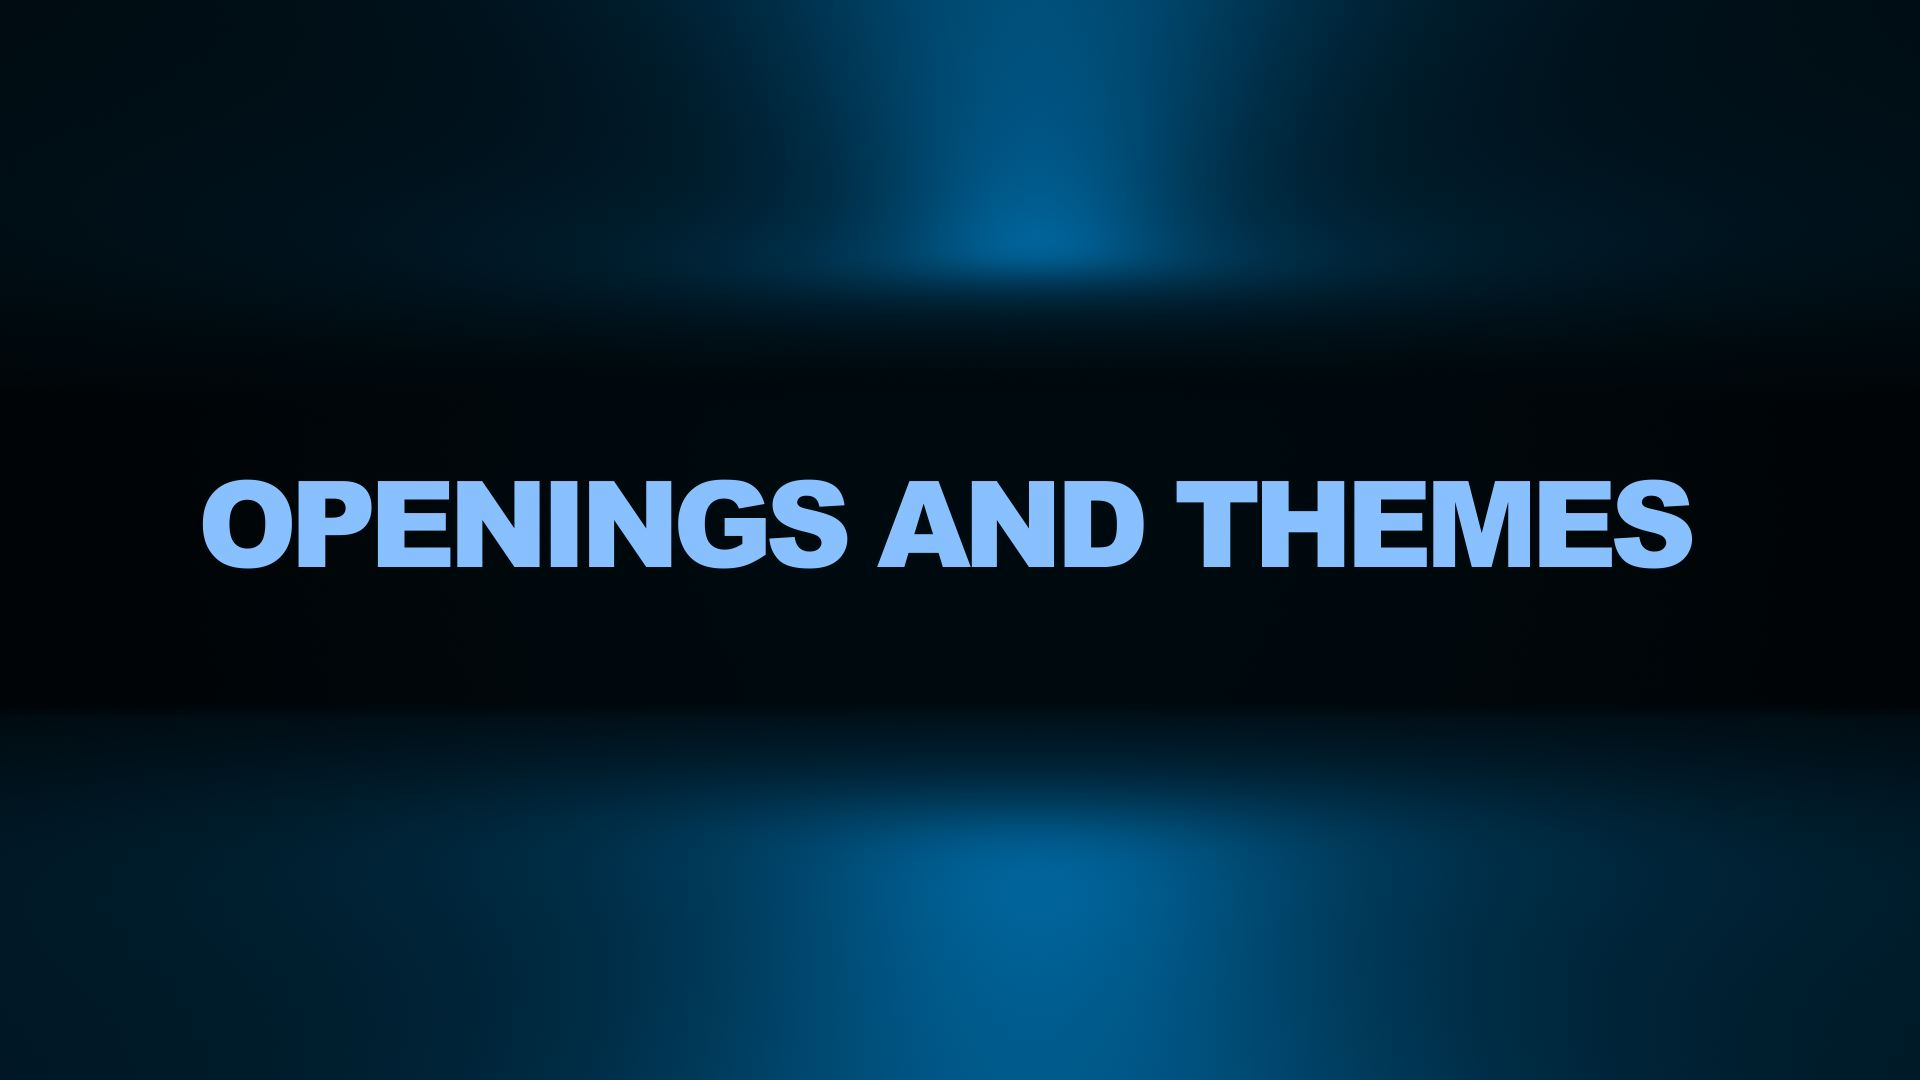 Openings and Themes